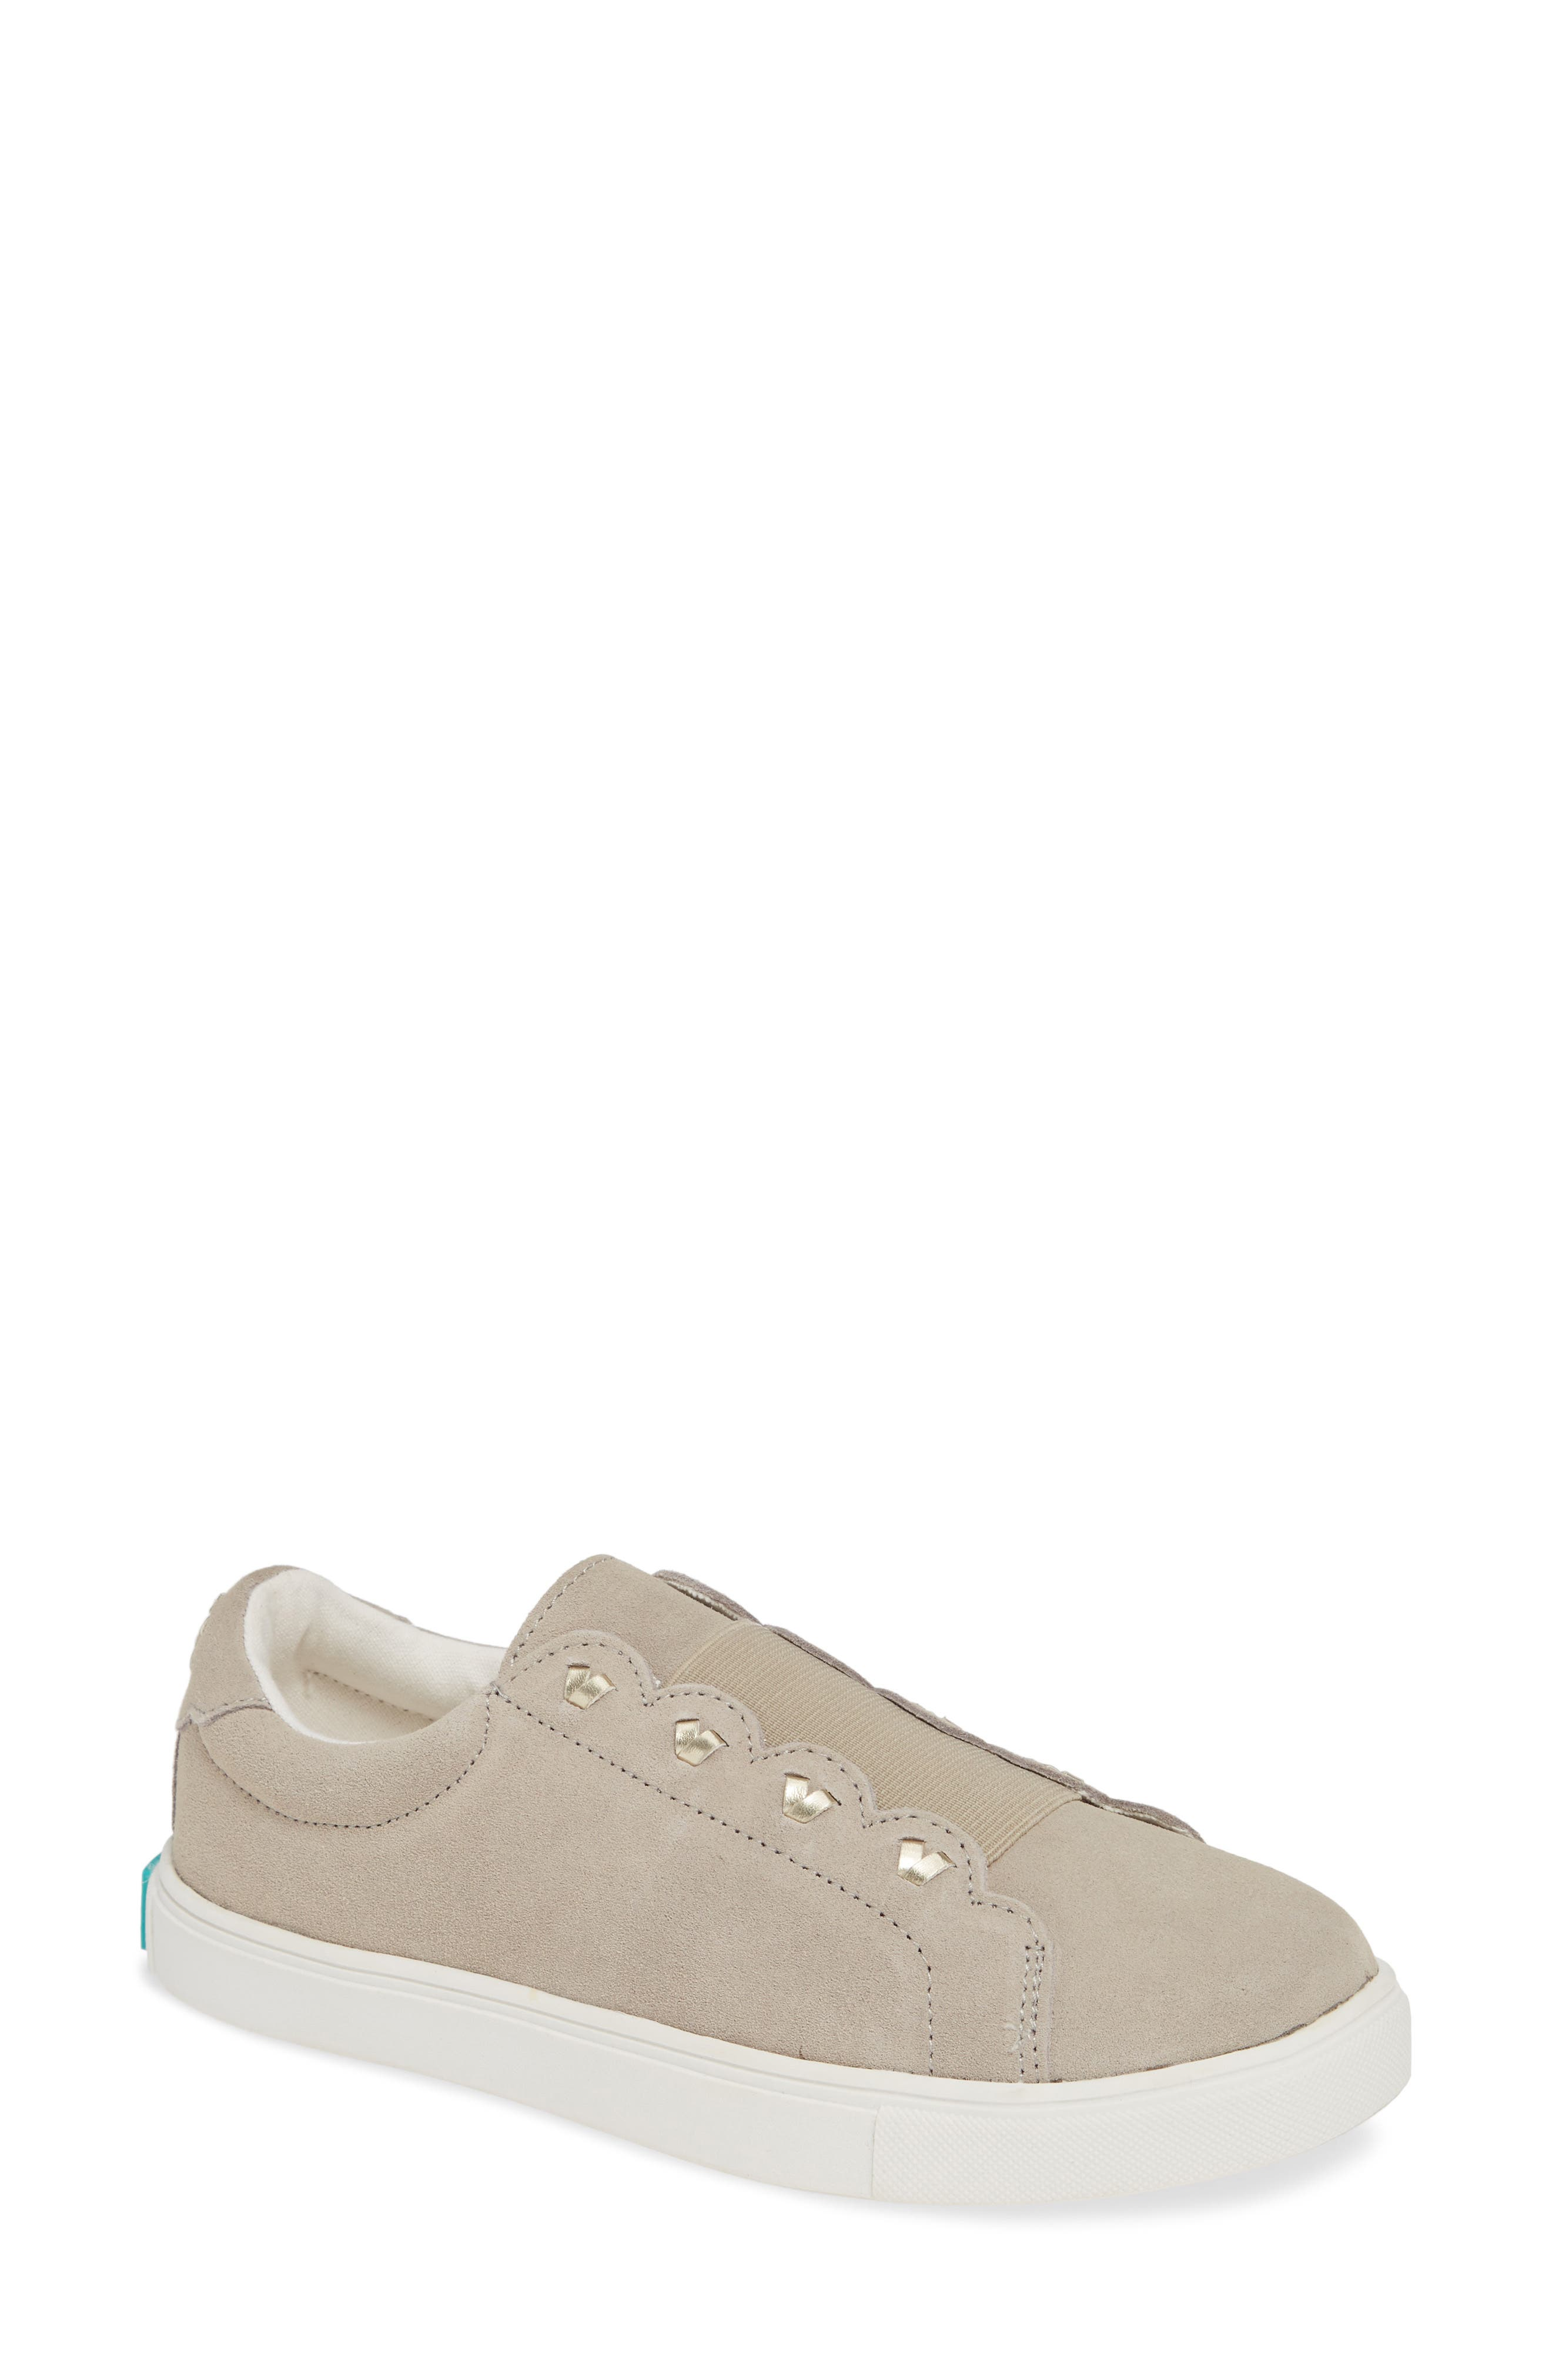 Rye Sneaker,                         Main,                         color, DOVE GREY SUEDE